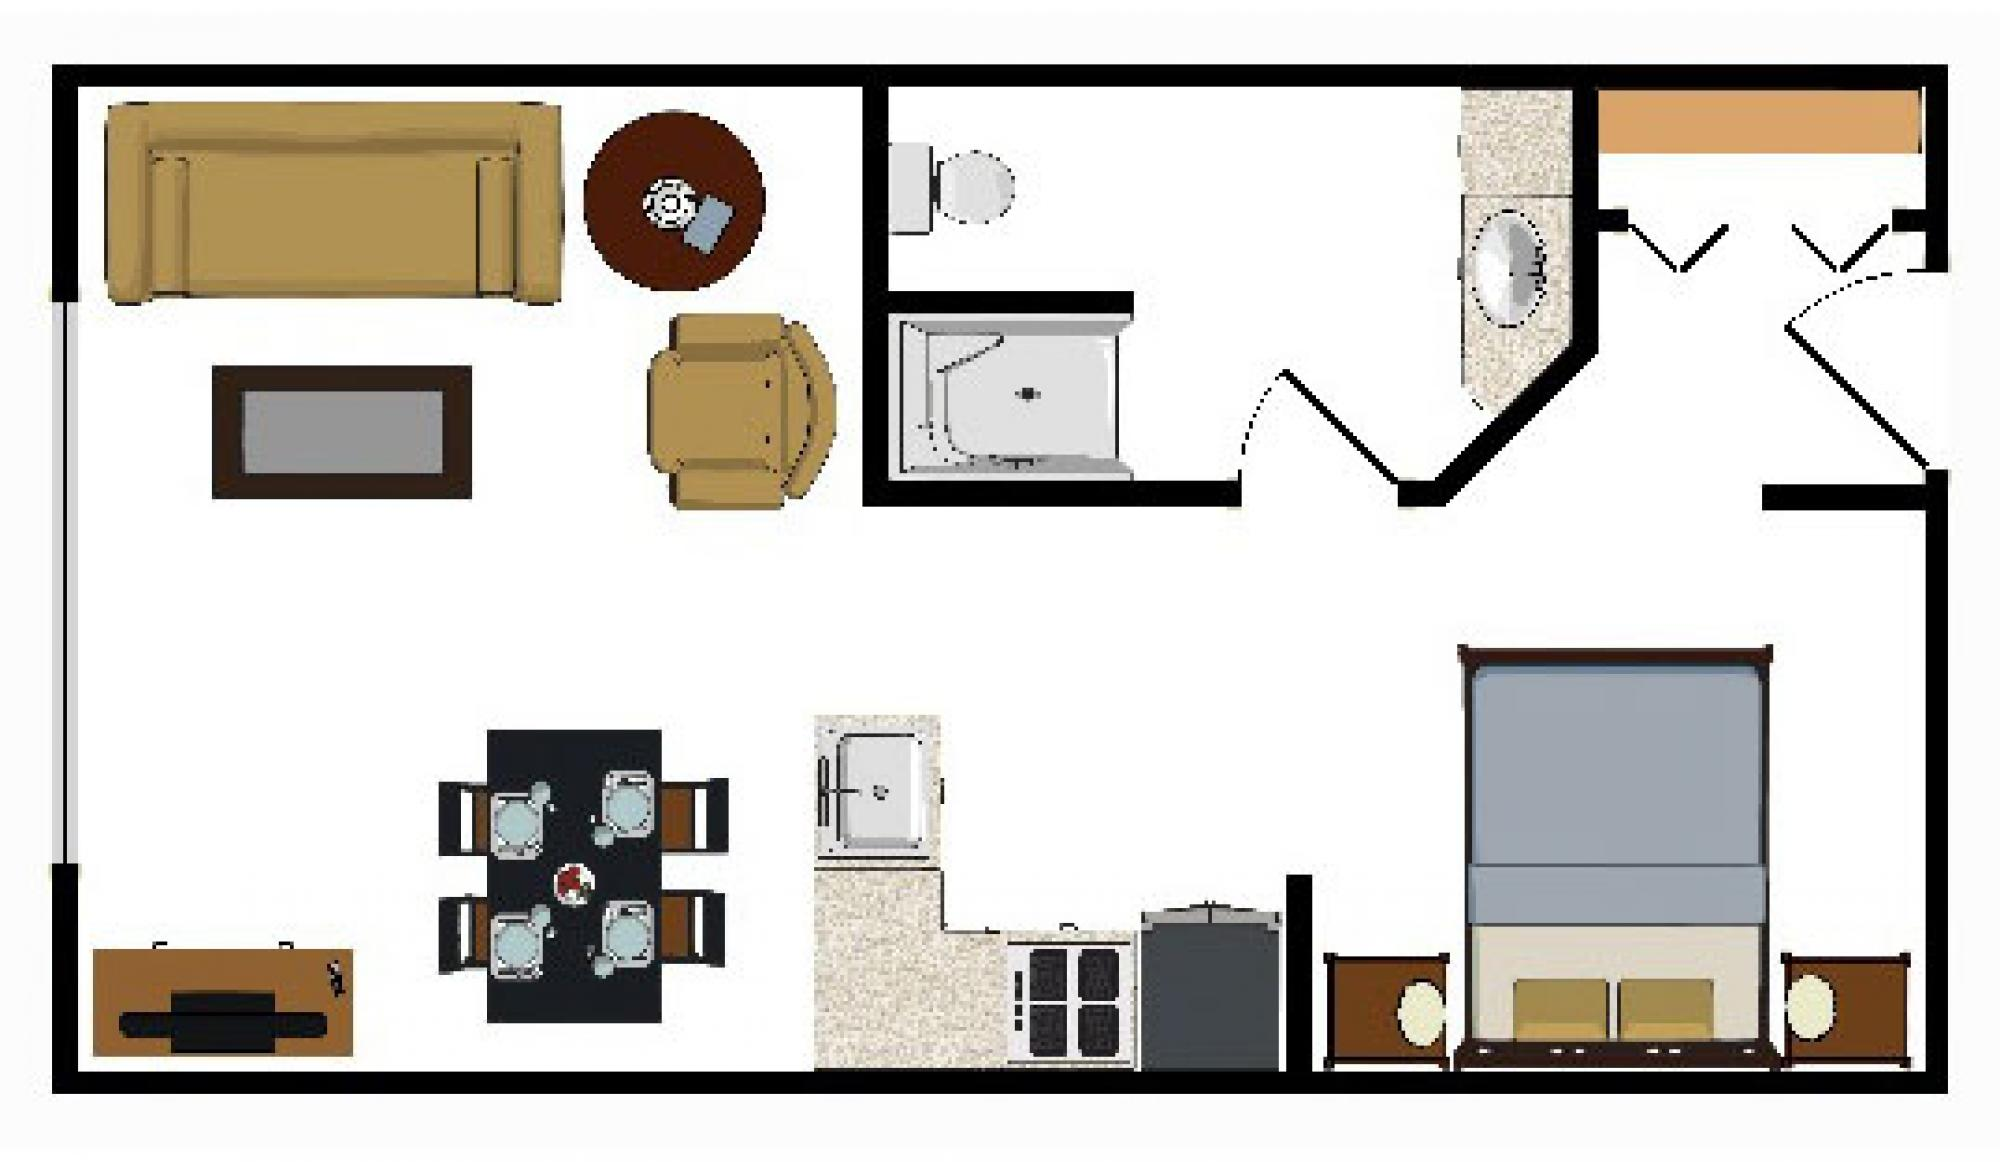 Beaver Run Resort Studio Floorplan in Breckenridge